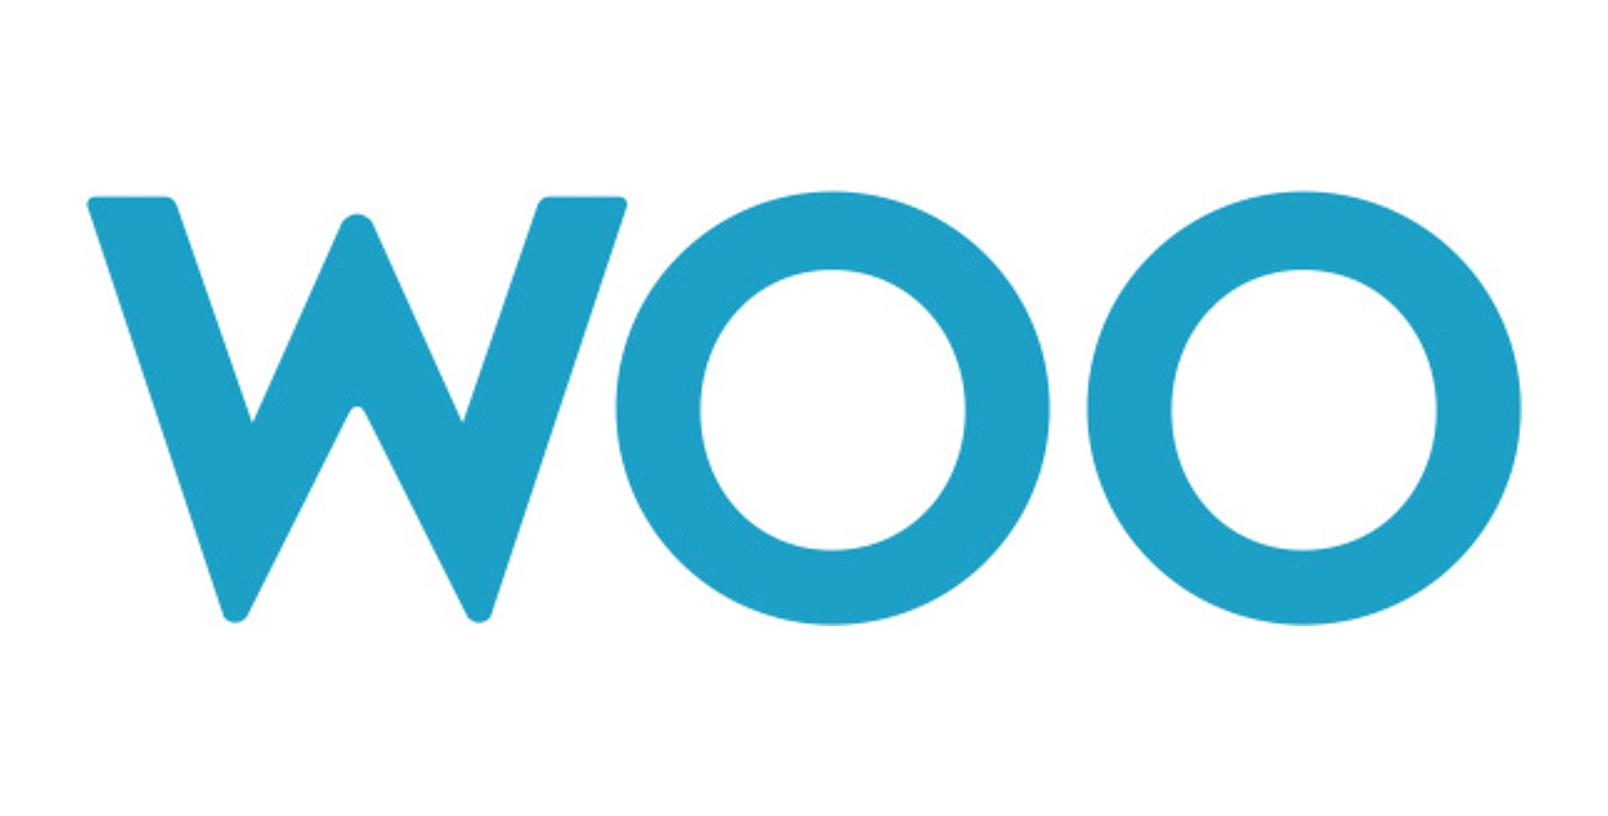 Woo lets you find a new job on your terms -- anonymously